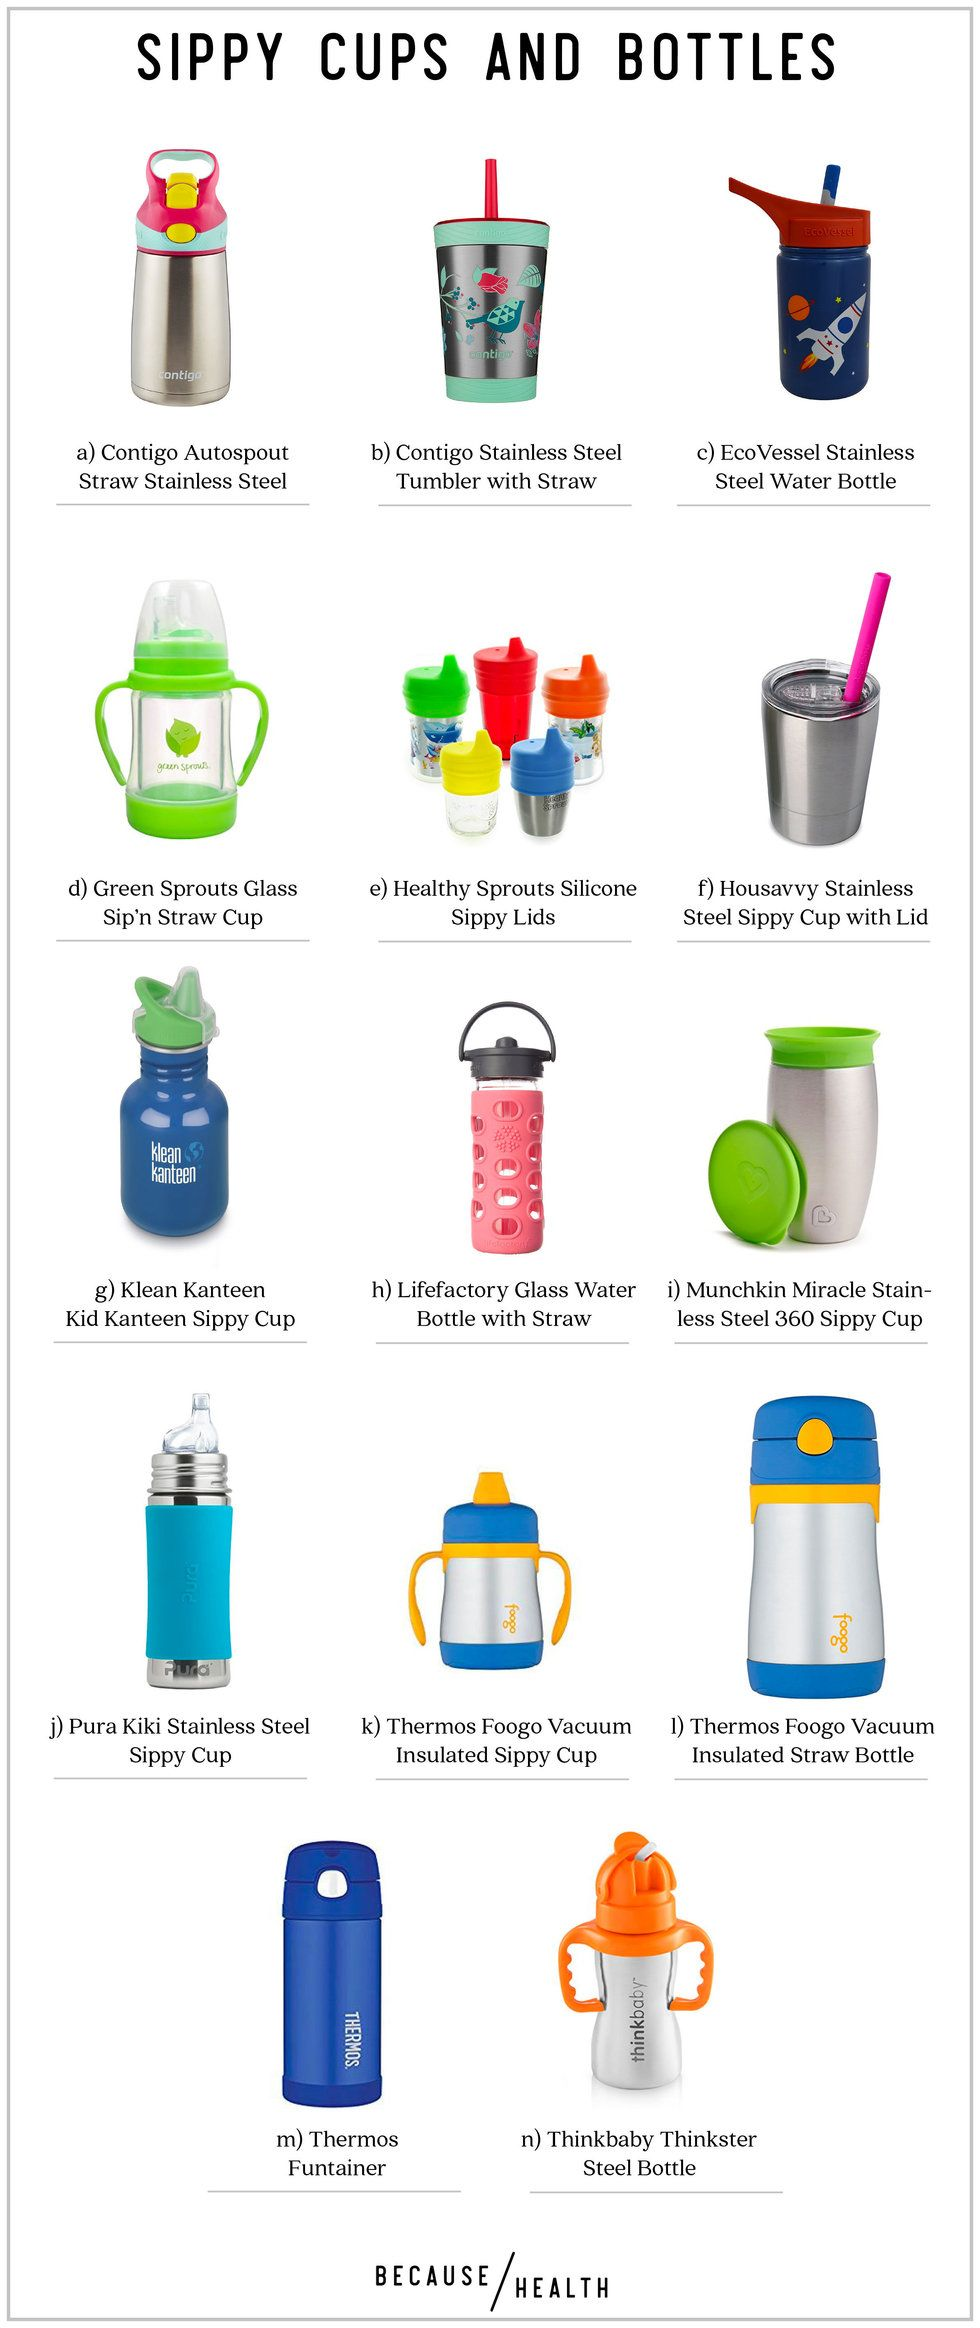 Glass and Stainless Steel Sippy Cups and Bottles